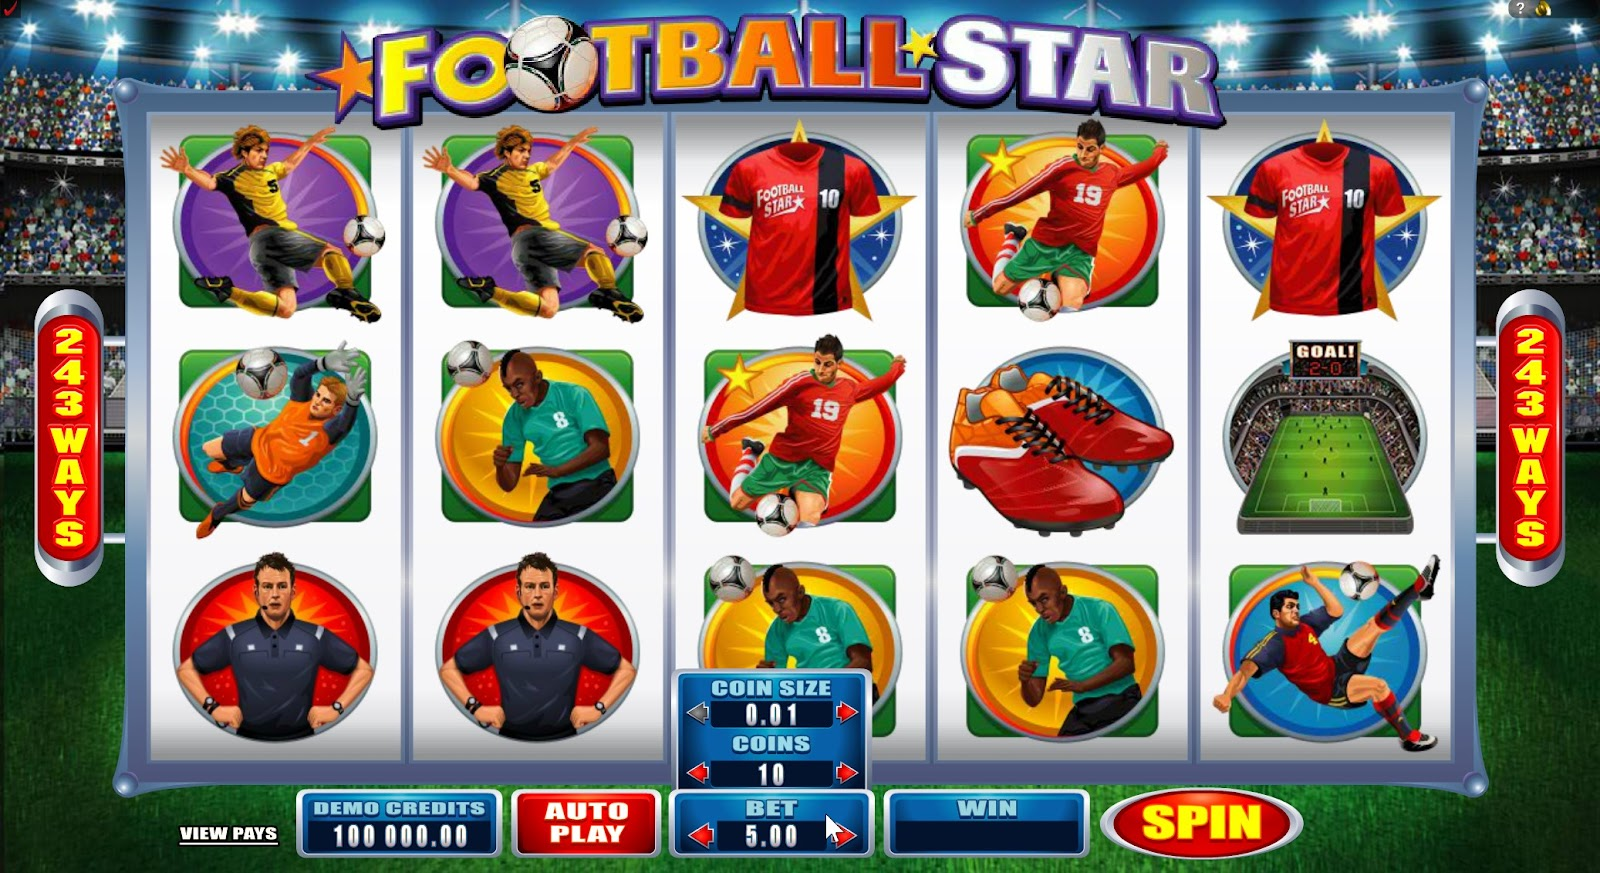 Football Star Slots Game Review